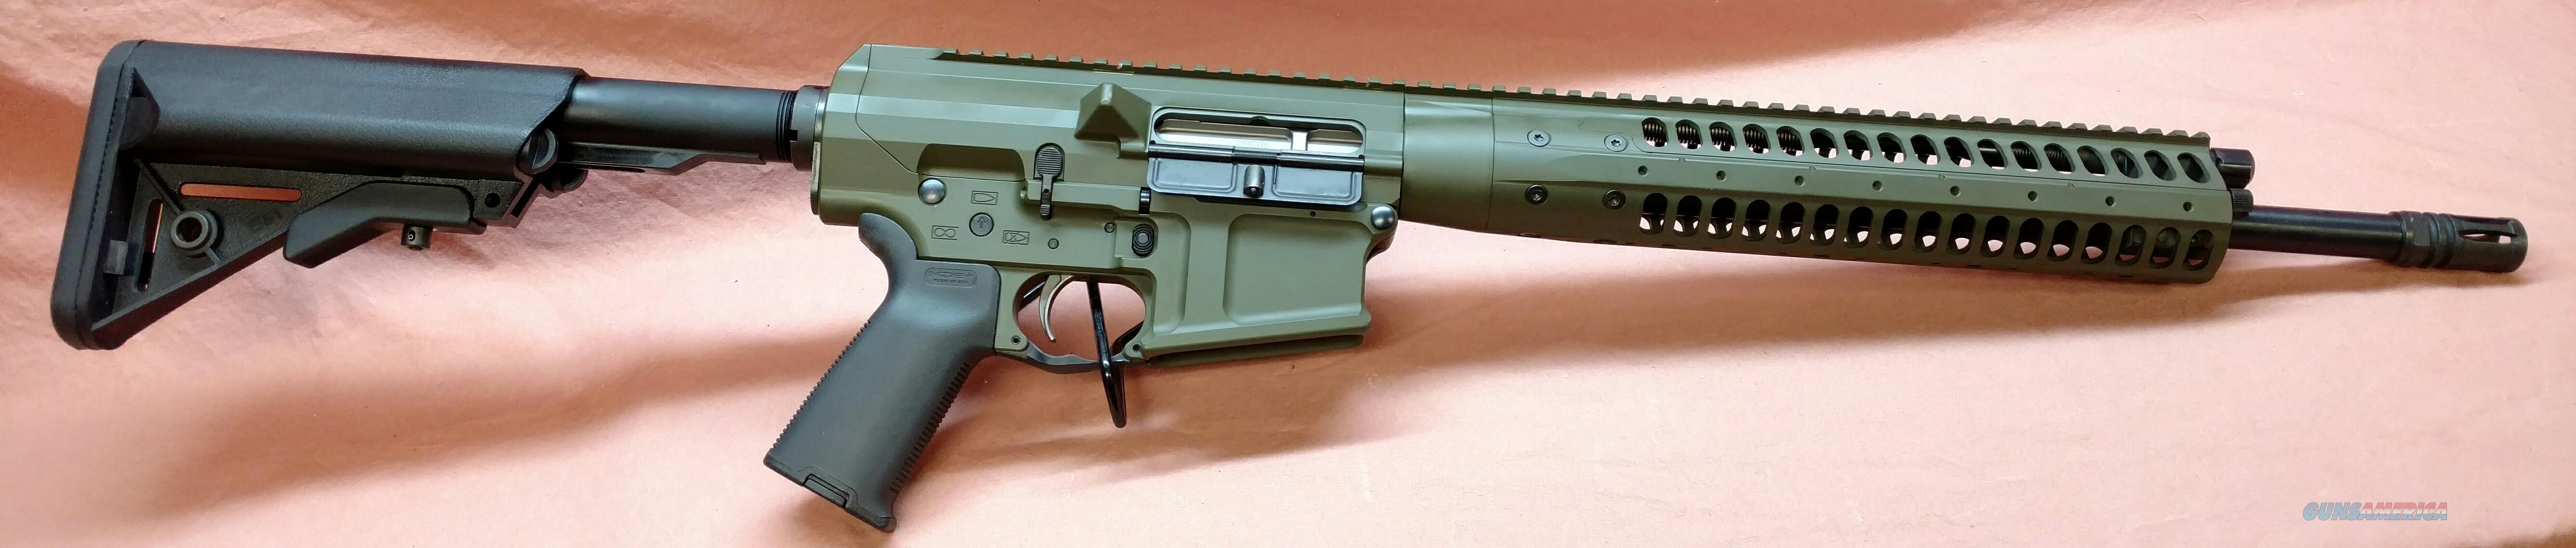 LWRC, R.E.P.R., 7.62x51  Guns > Rifles > A Misc Rifles